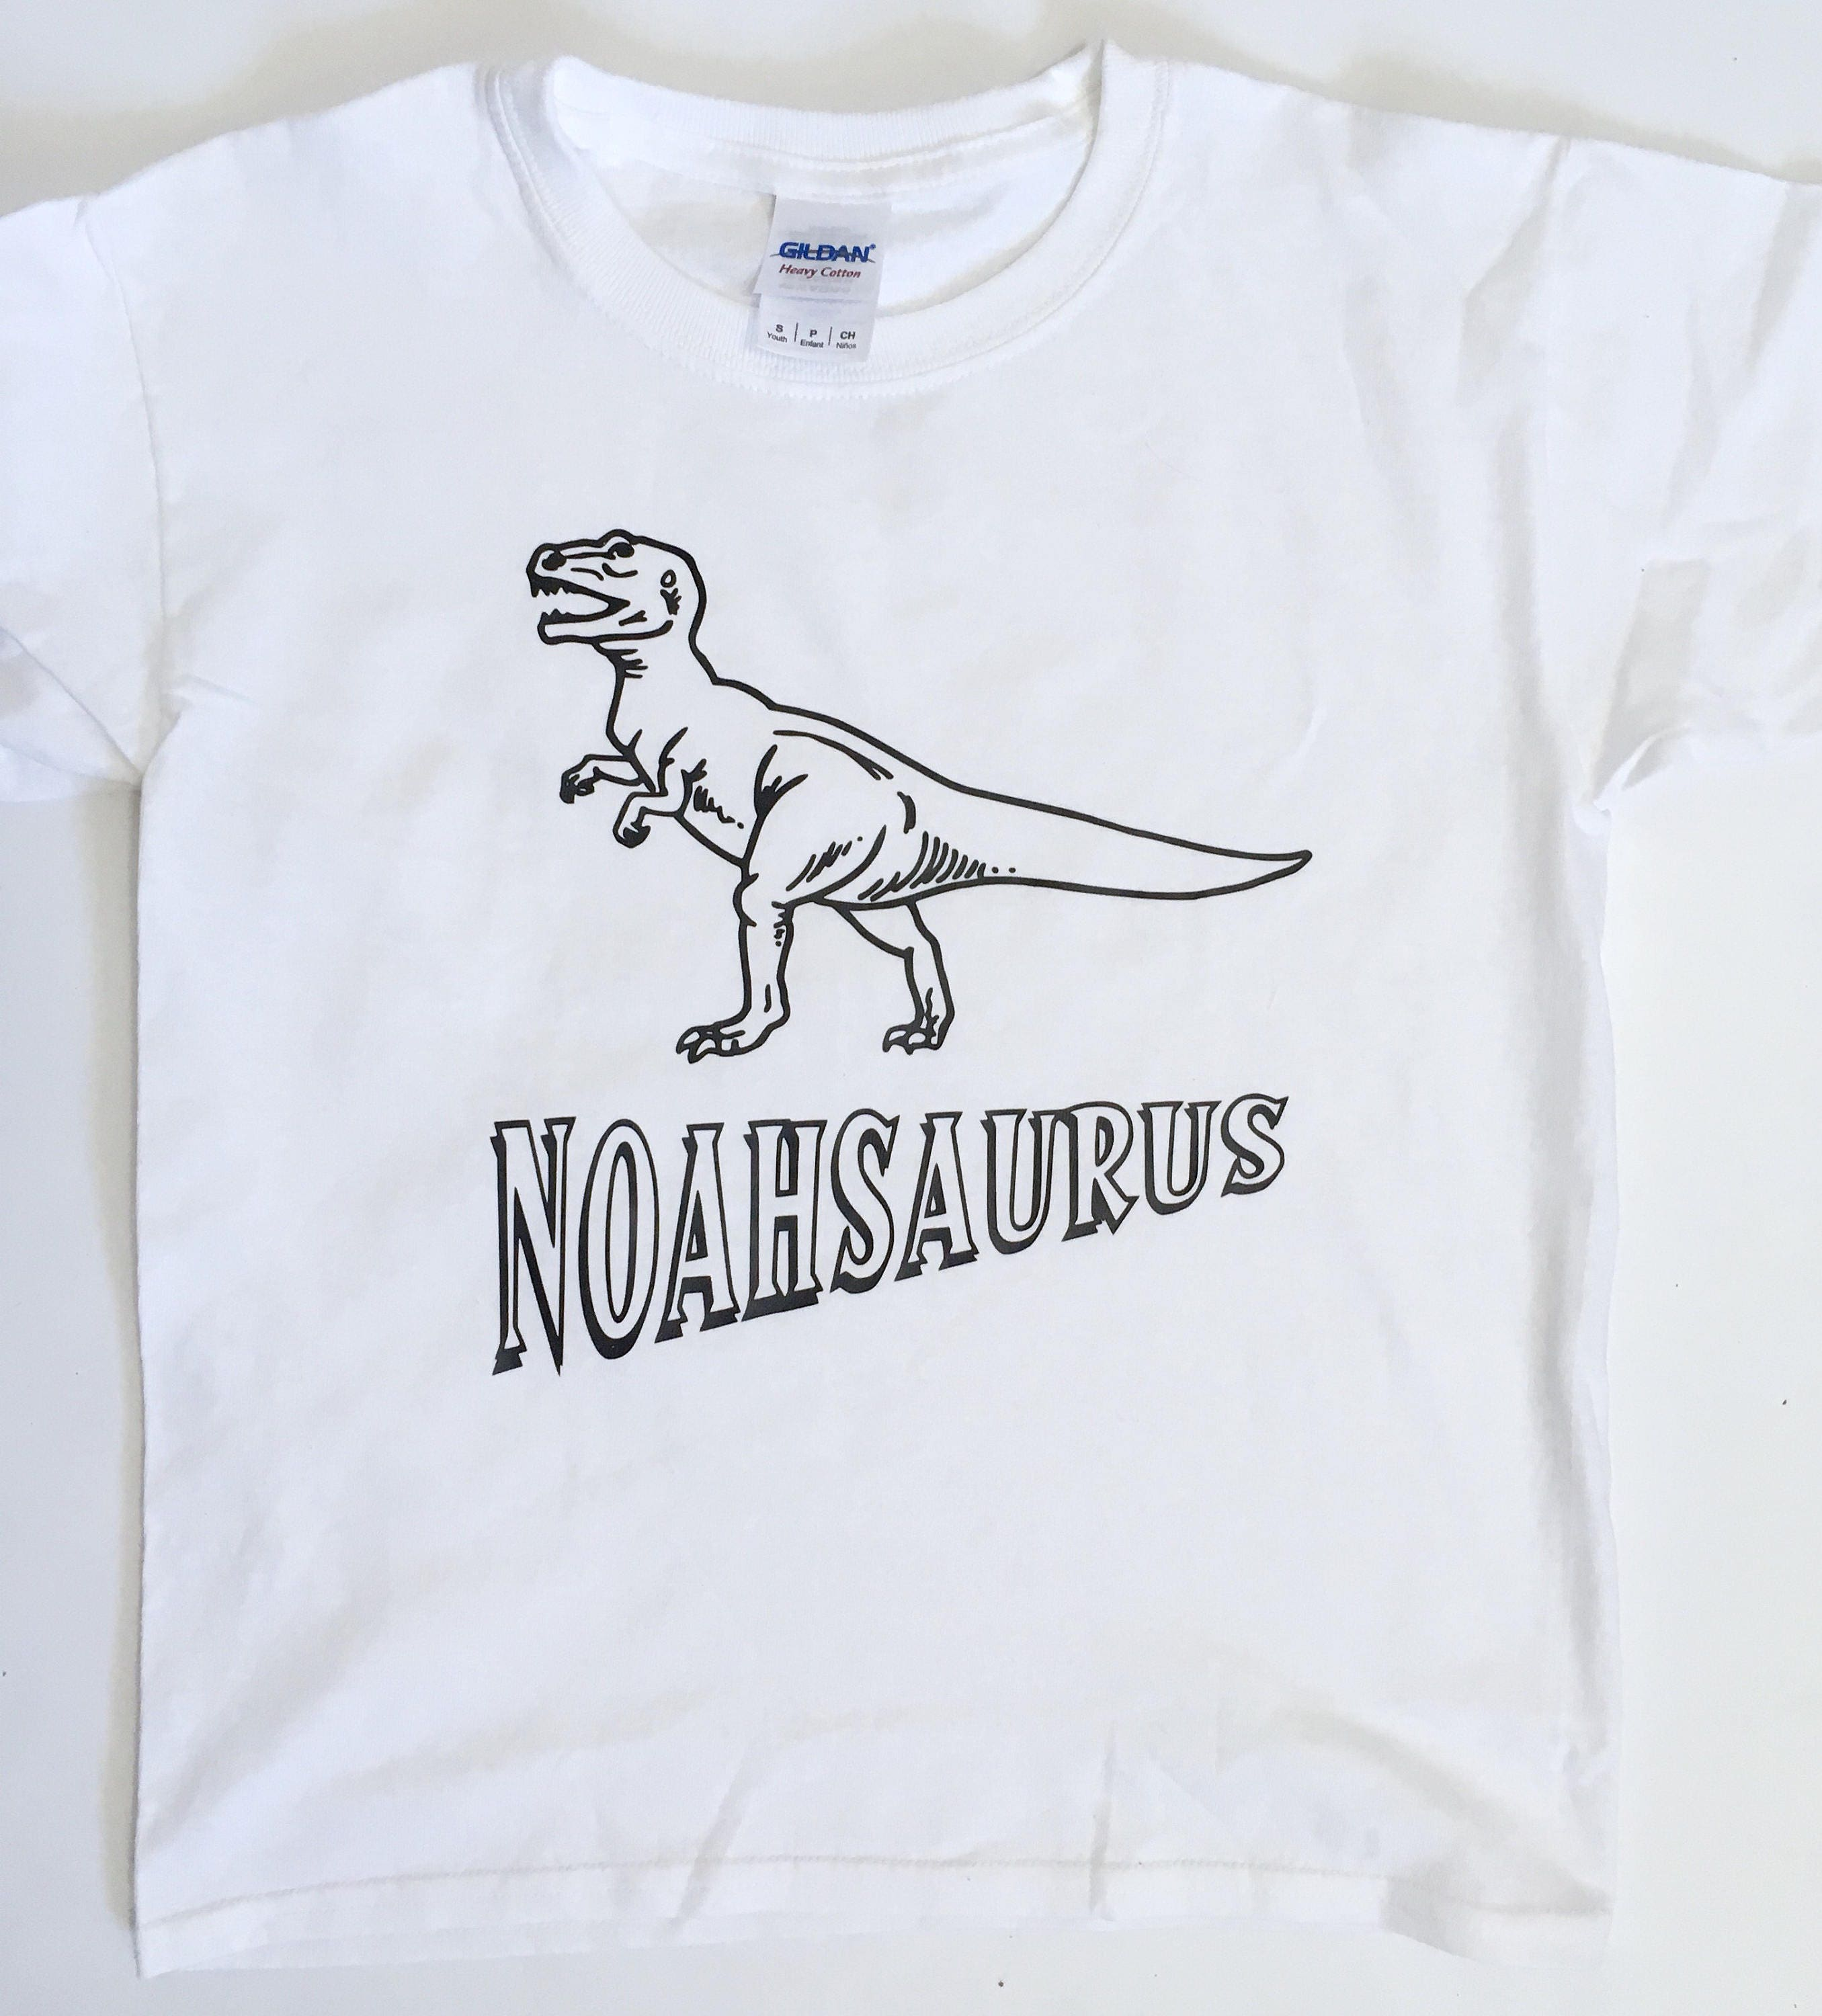 d5039cd77 ... kids T Rex t shirt, coloring shirt, add your own color, Boy Easter  gift, dinosaur birthday tee. gallery photo gallery photo gallery photo  gallery photo ...